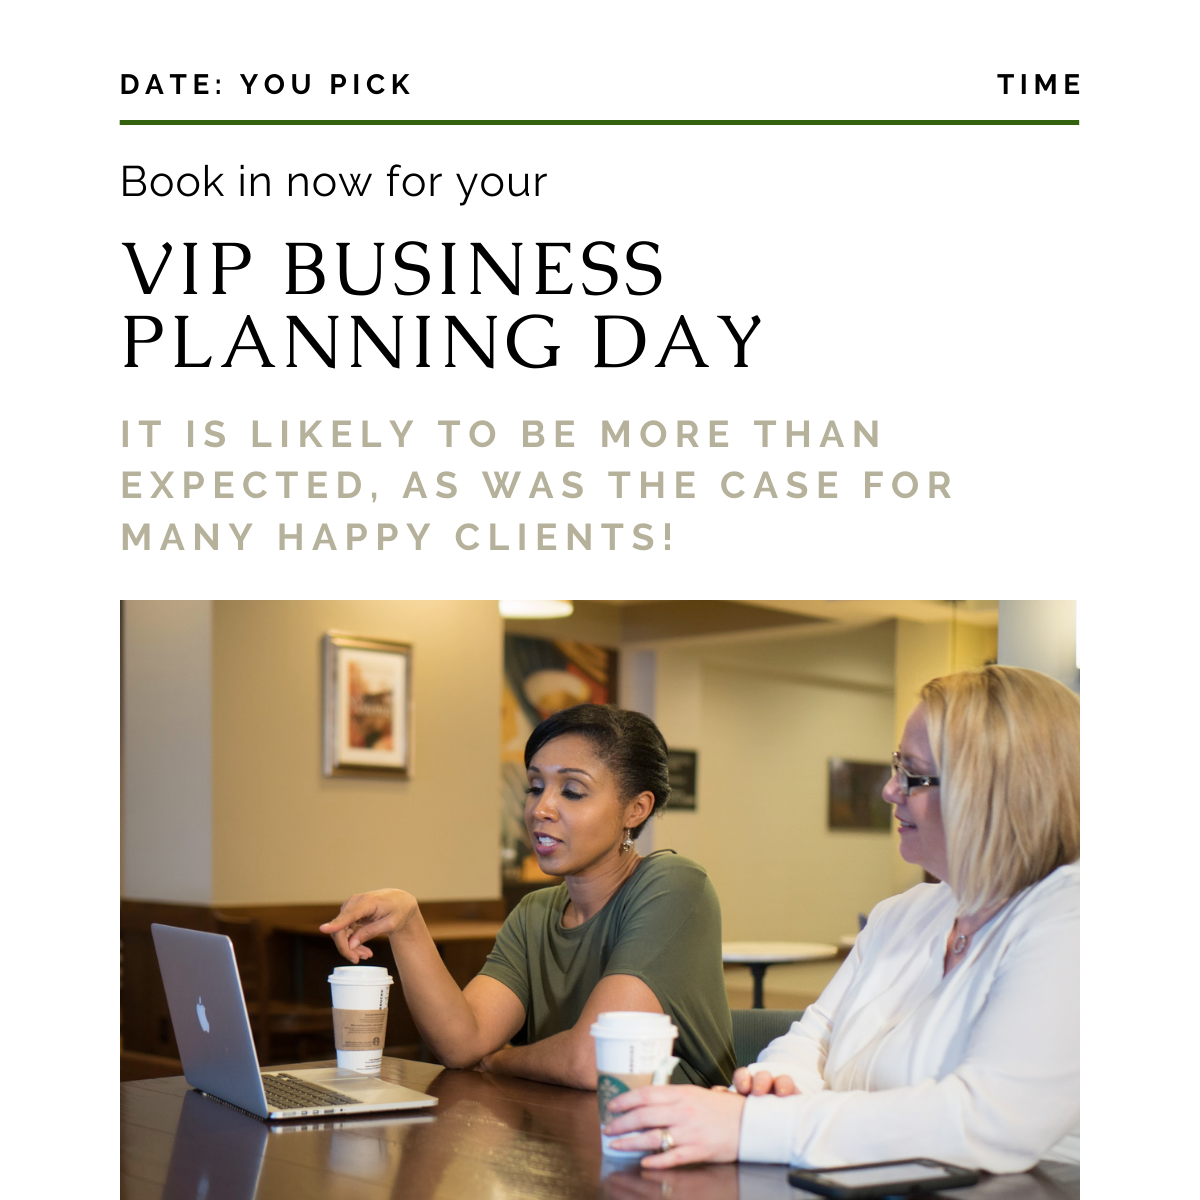 VIP Business Planning Day Can Be More Than You Expect!